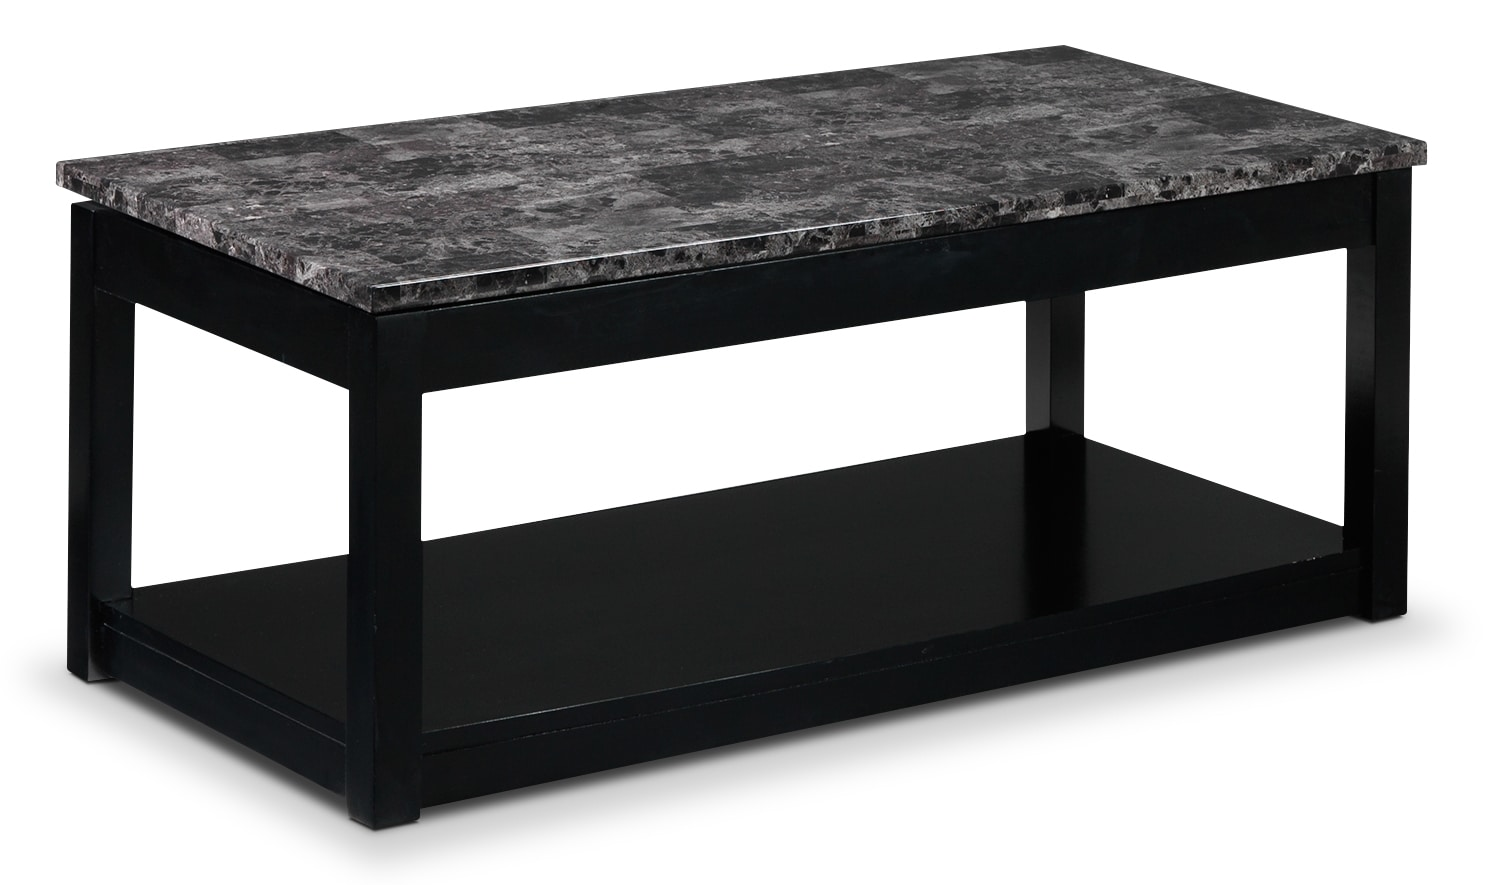 Accent and Occasional Furniture - Selena Lift-Top Coffee Table - Black